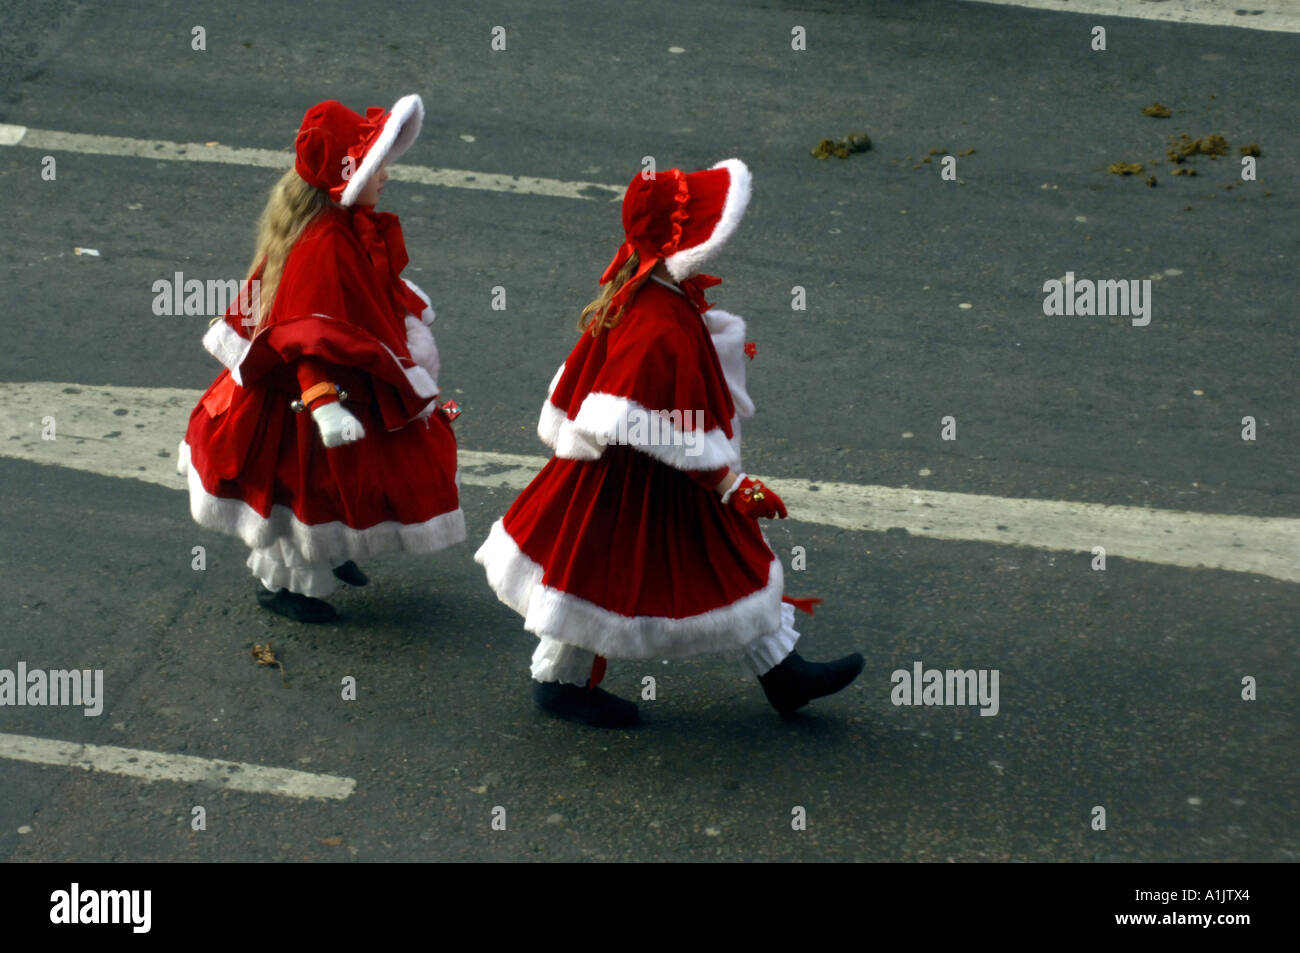 two girls youngsters red santa claus christmas outfits costumes pretty cute new years day parade mayors parade mayoral parade Lo - Stock Image